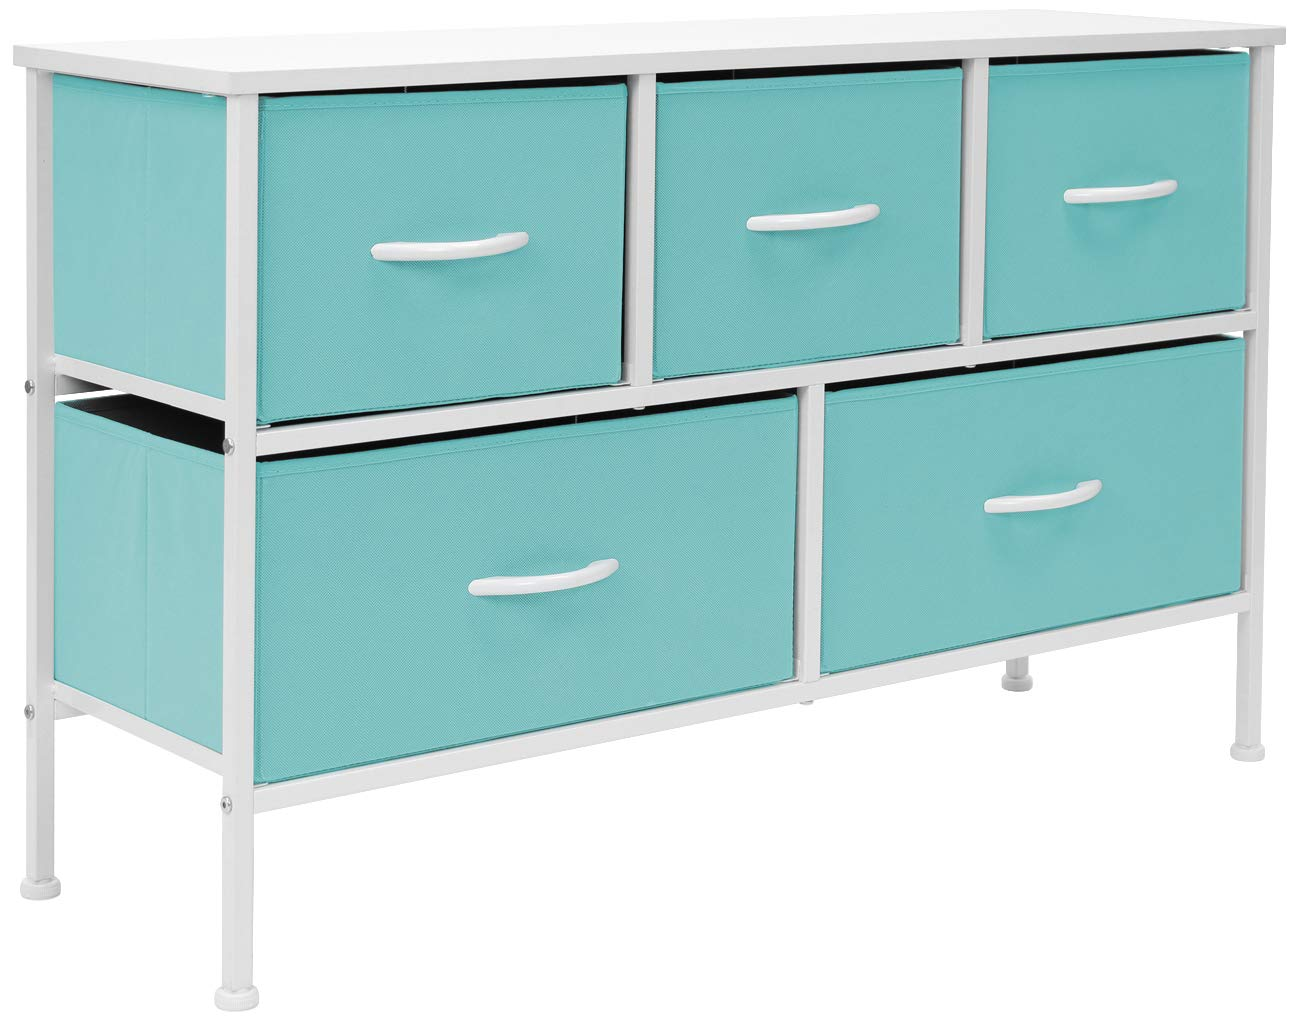 Sorbus Dresser with 5 Drawers - Furniture Storage Chest for Kid's, Teens, Bedroom, Nursery, Playroom, Clothes, Toys - Steel Frame, Wood Top, Fabric Bins (Pastel Aqua)